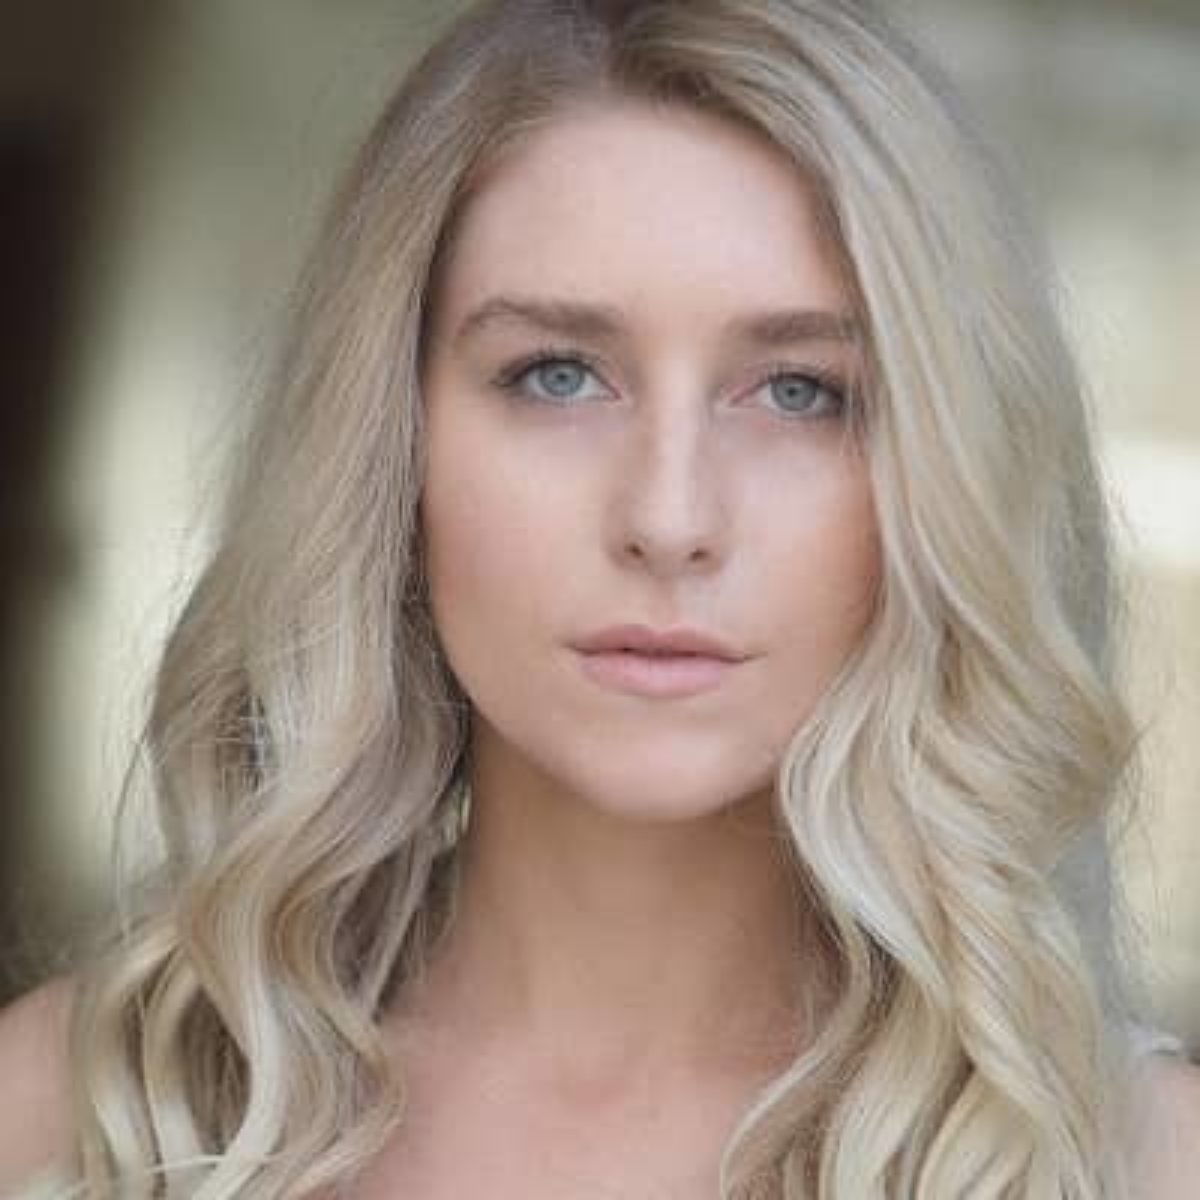 Taylor Olsen - Bio, Age, Height, In Relation, Nationality, Body  Measurement, Career